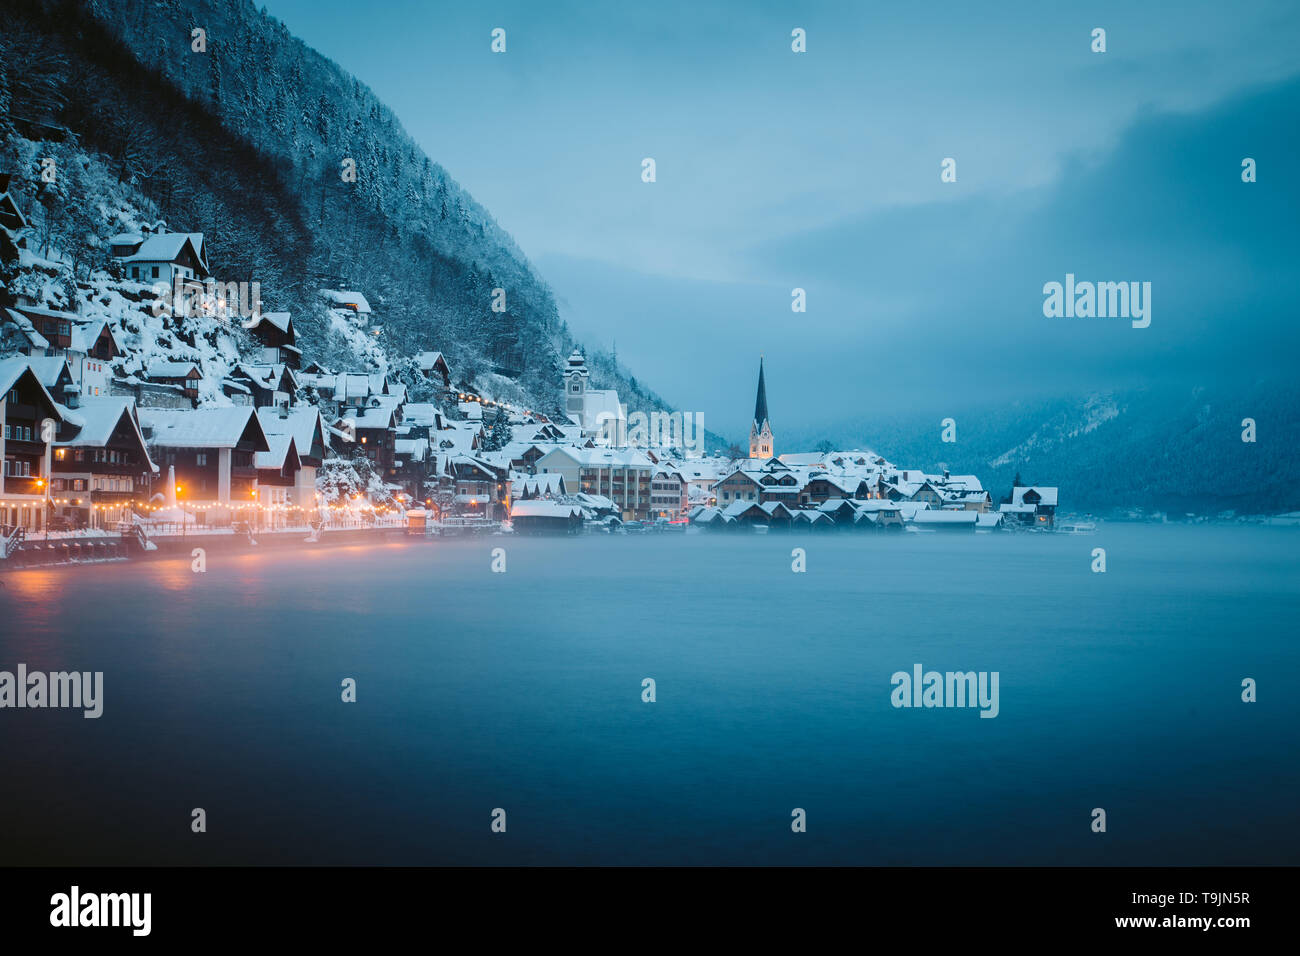 Panorama view of famous Hallstatt lakeside town in the Alps in mystic twilight during blue hour at dawn on a beautiful cold foggy day in winter, Salzk - Stock Image